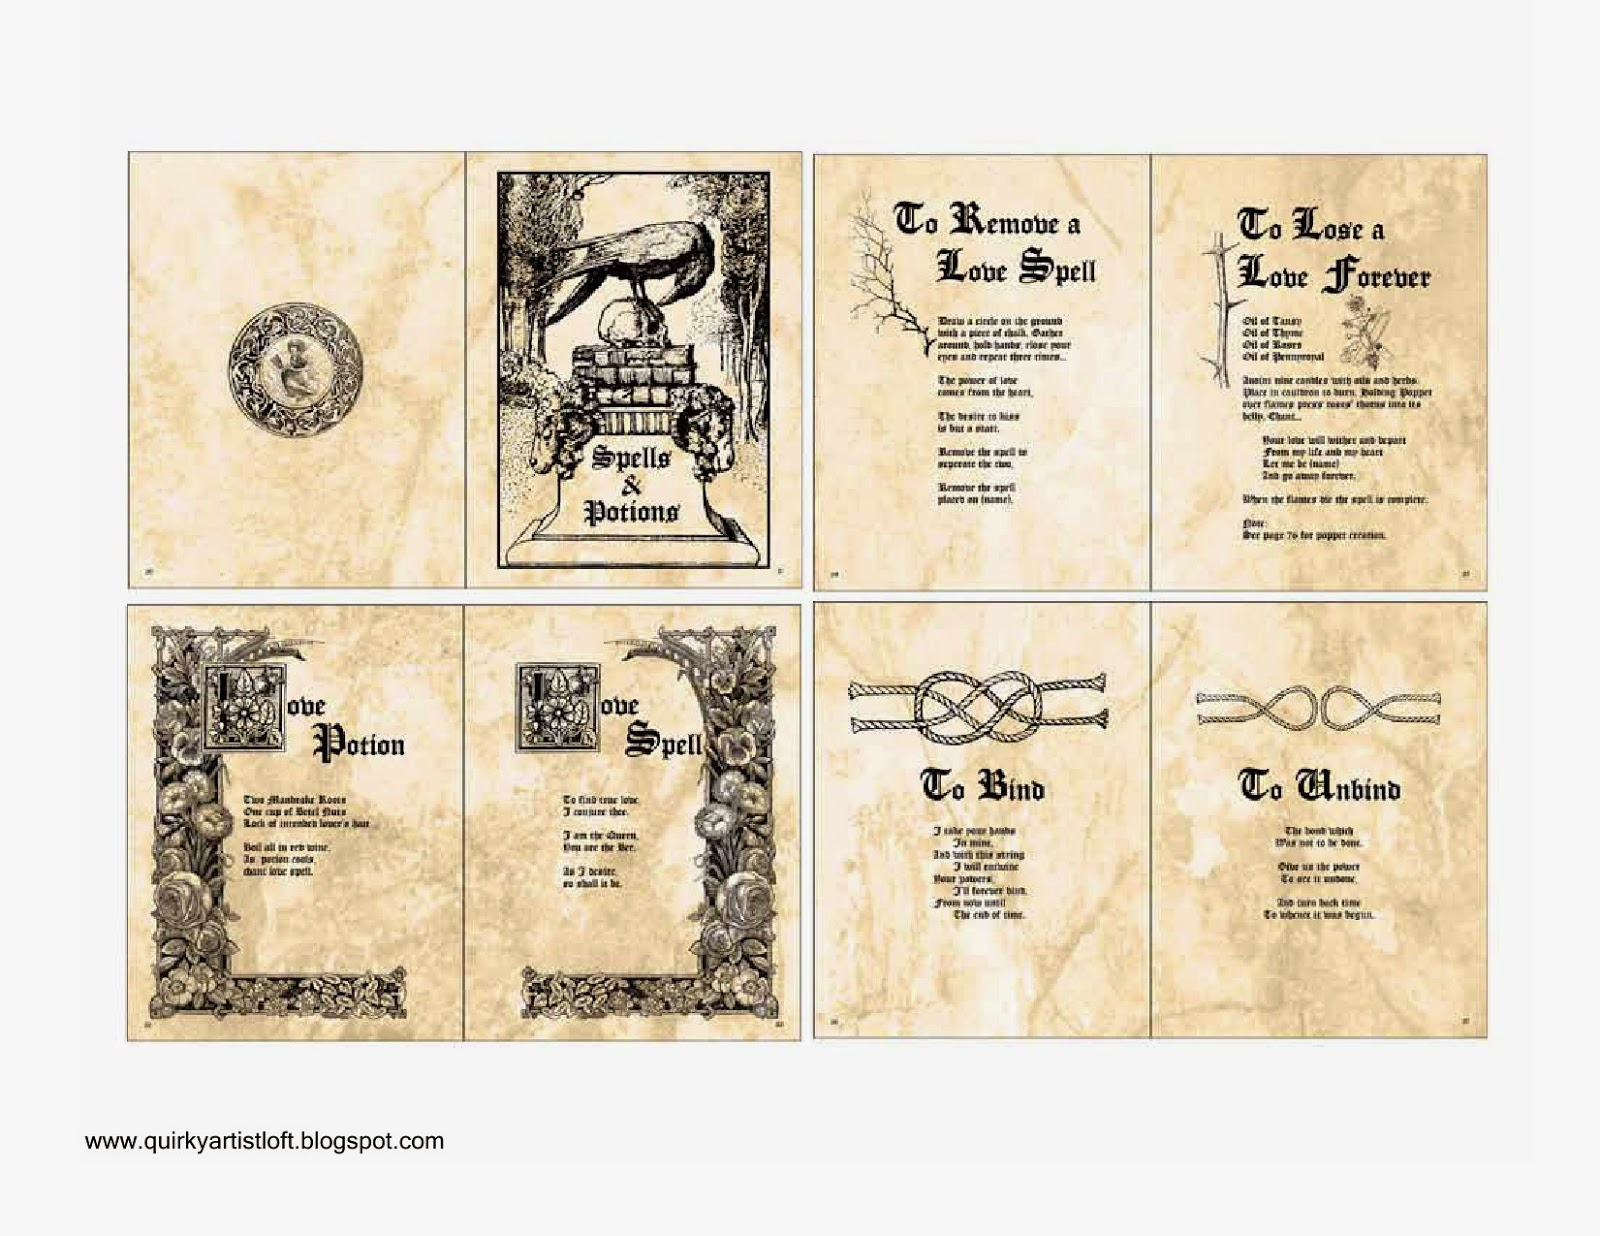 Harry Potter Book Pdf Free Download : Quirky artist loft free printable doll spell book